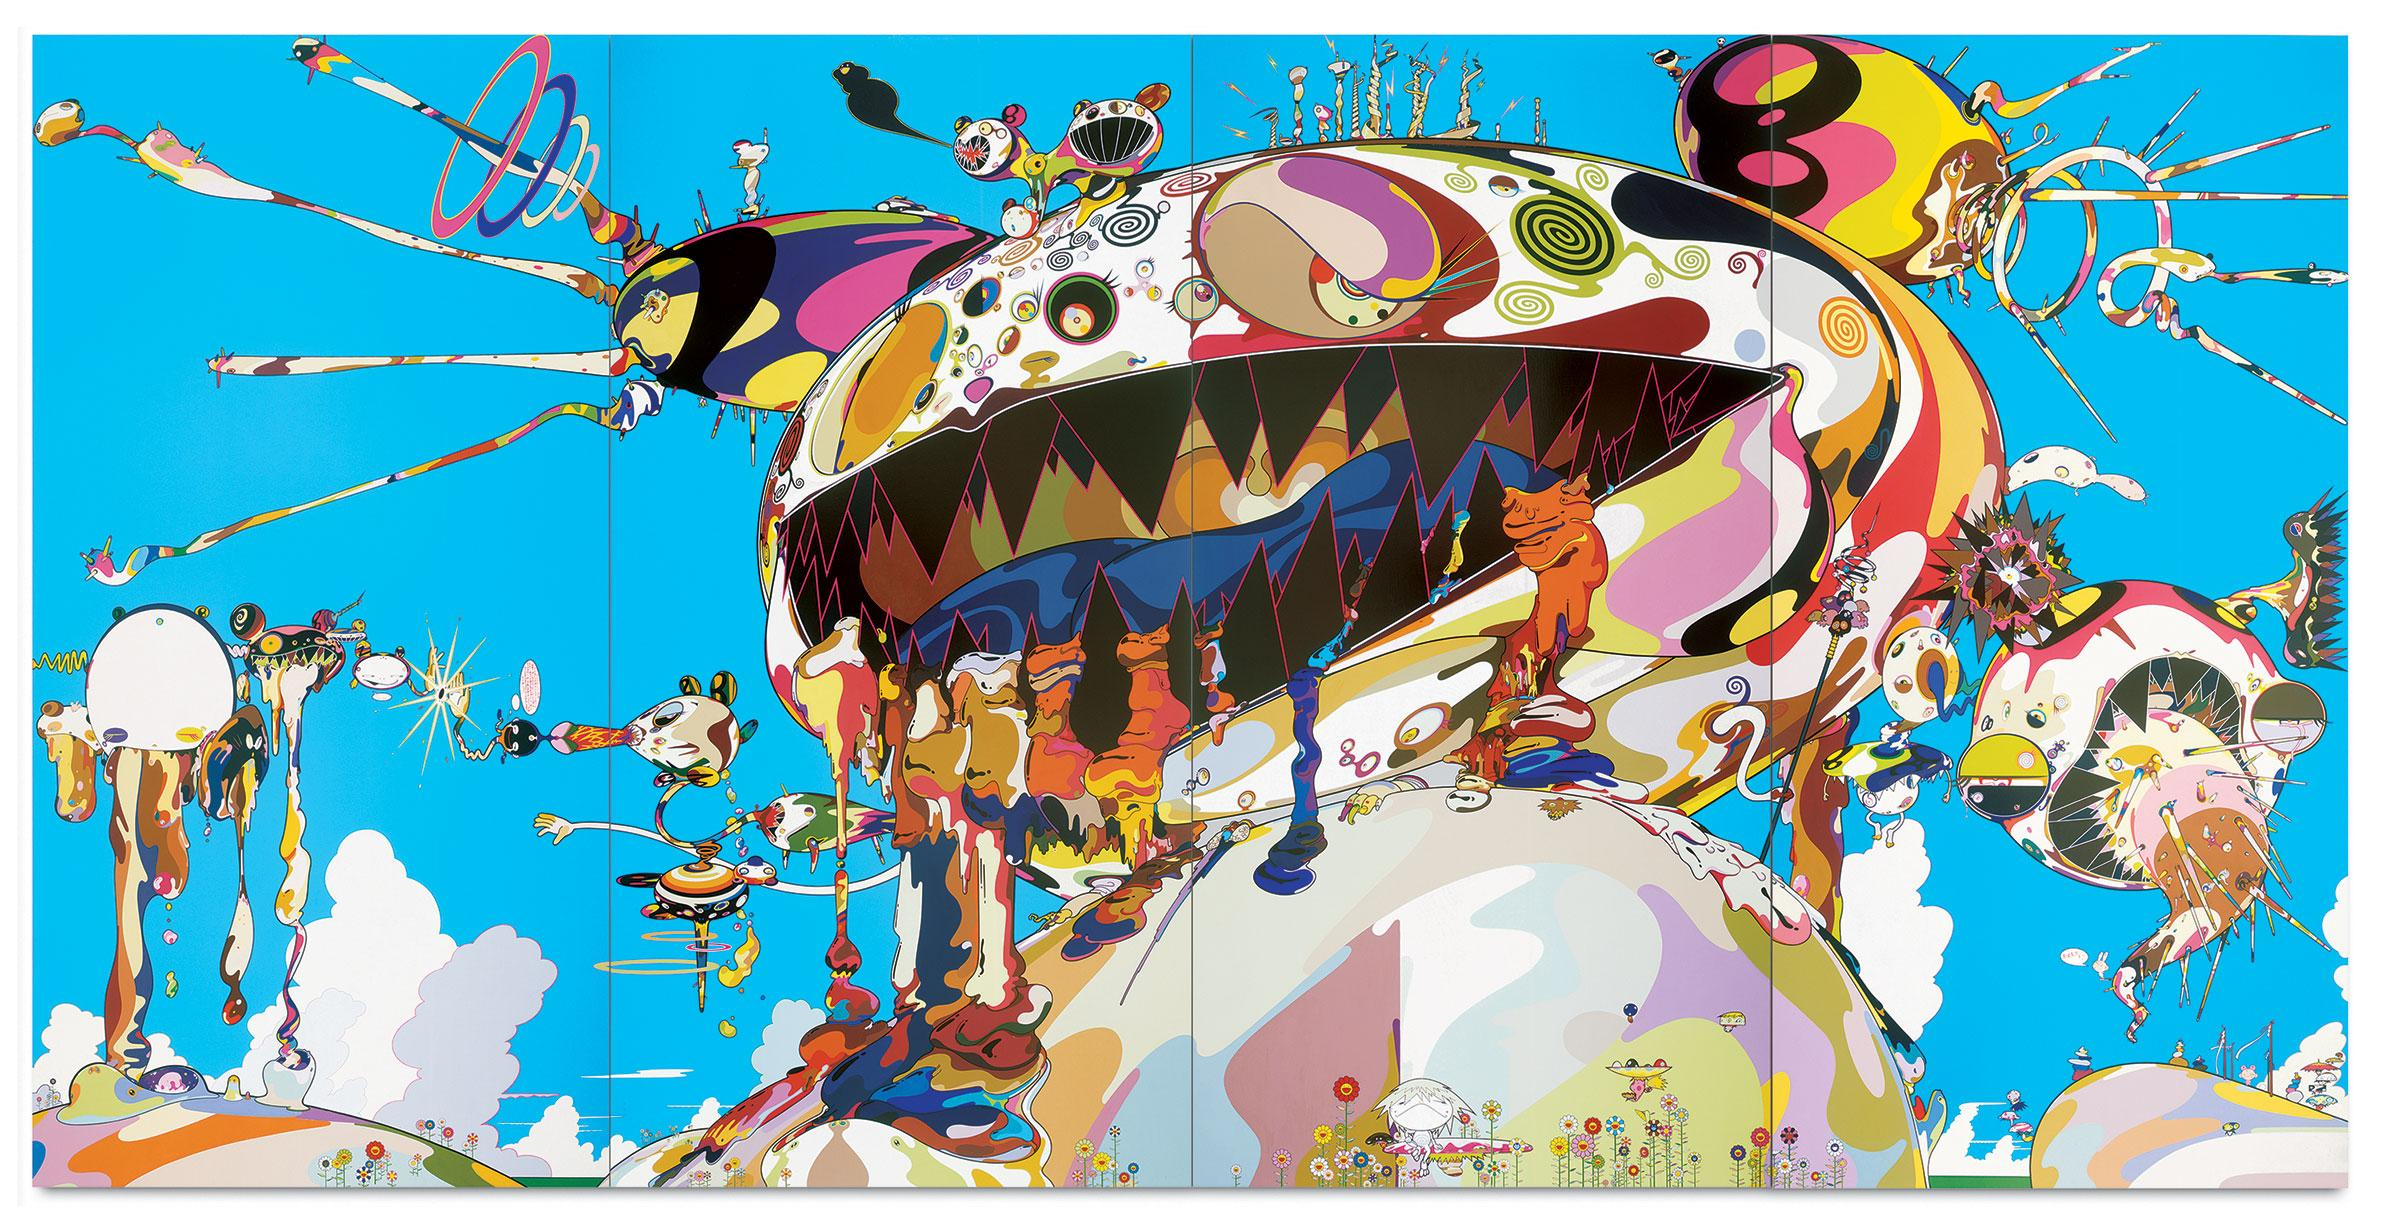 A brightly colored landscape with a giant multi-colored humunculous sitting on top of a hill, its open mouth revealing jagged teeth, seeping fluids while pustules explode from other parts of its ovoid head.